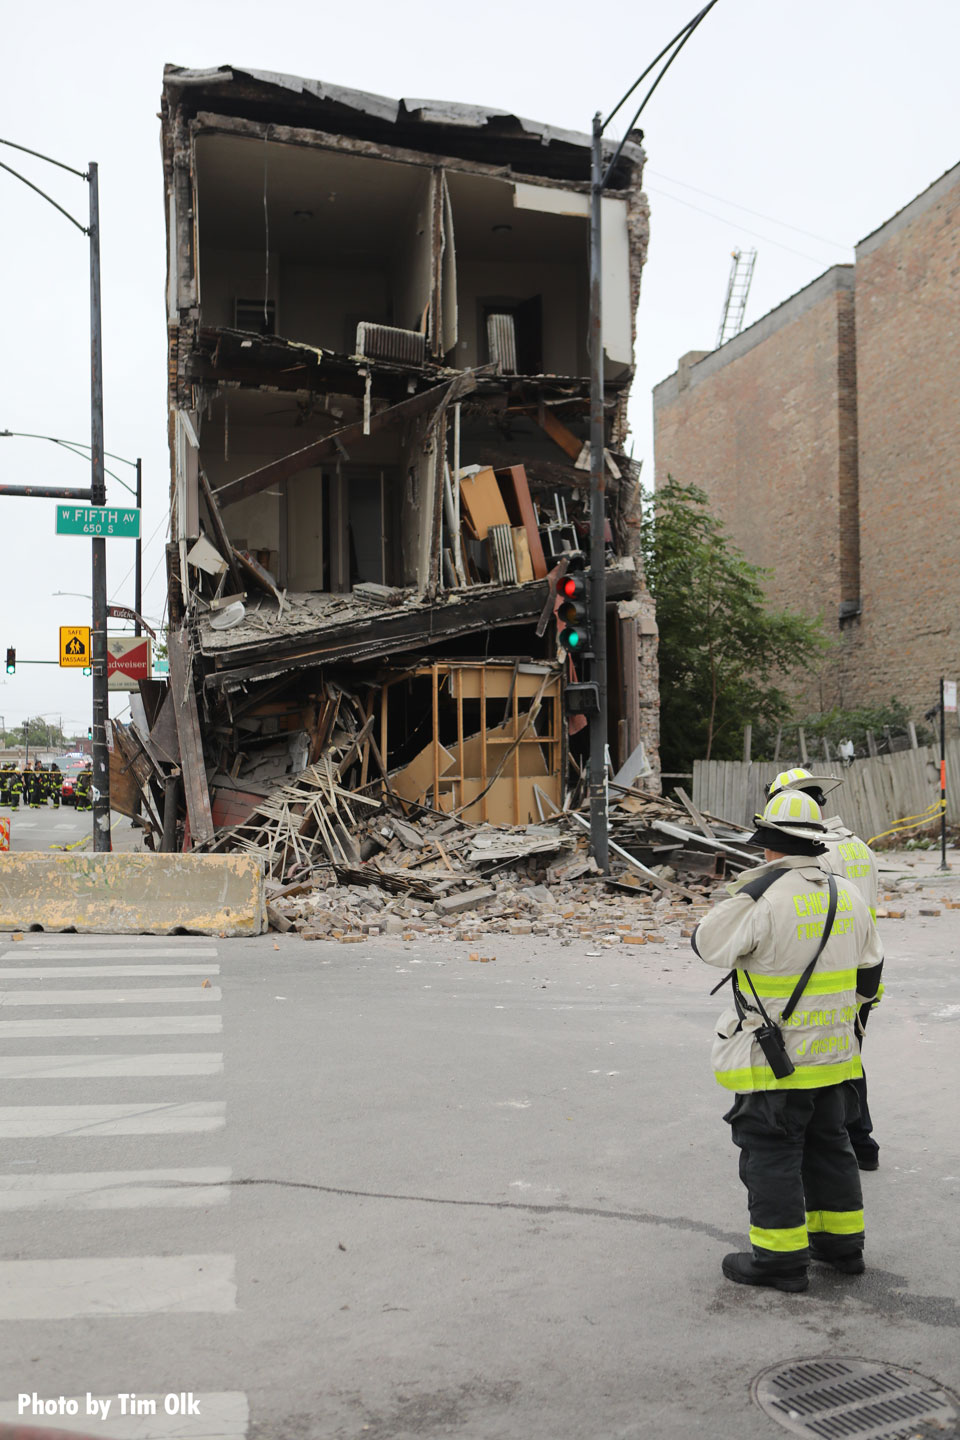 A Chicago fire official with the damaged building in the background.